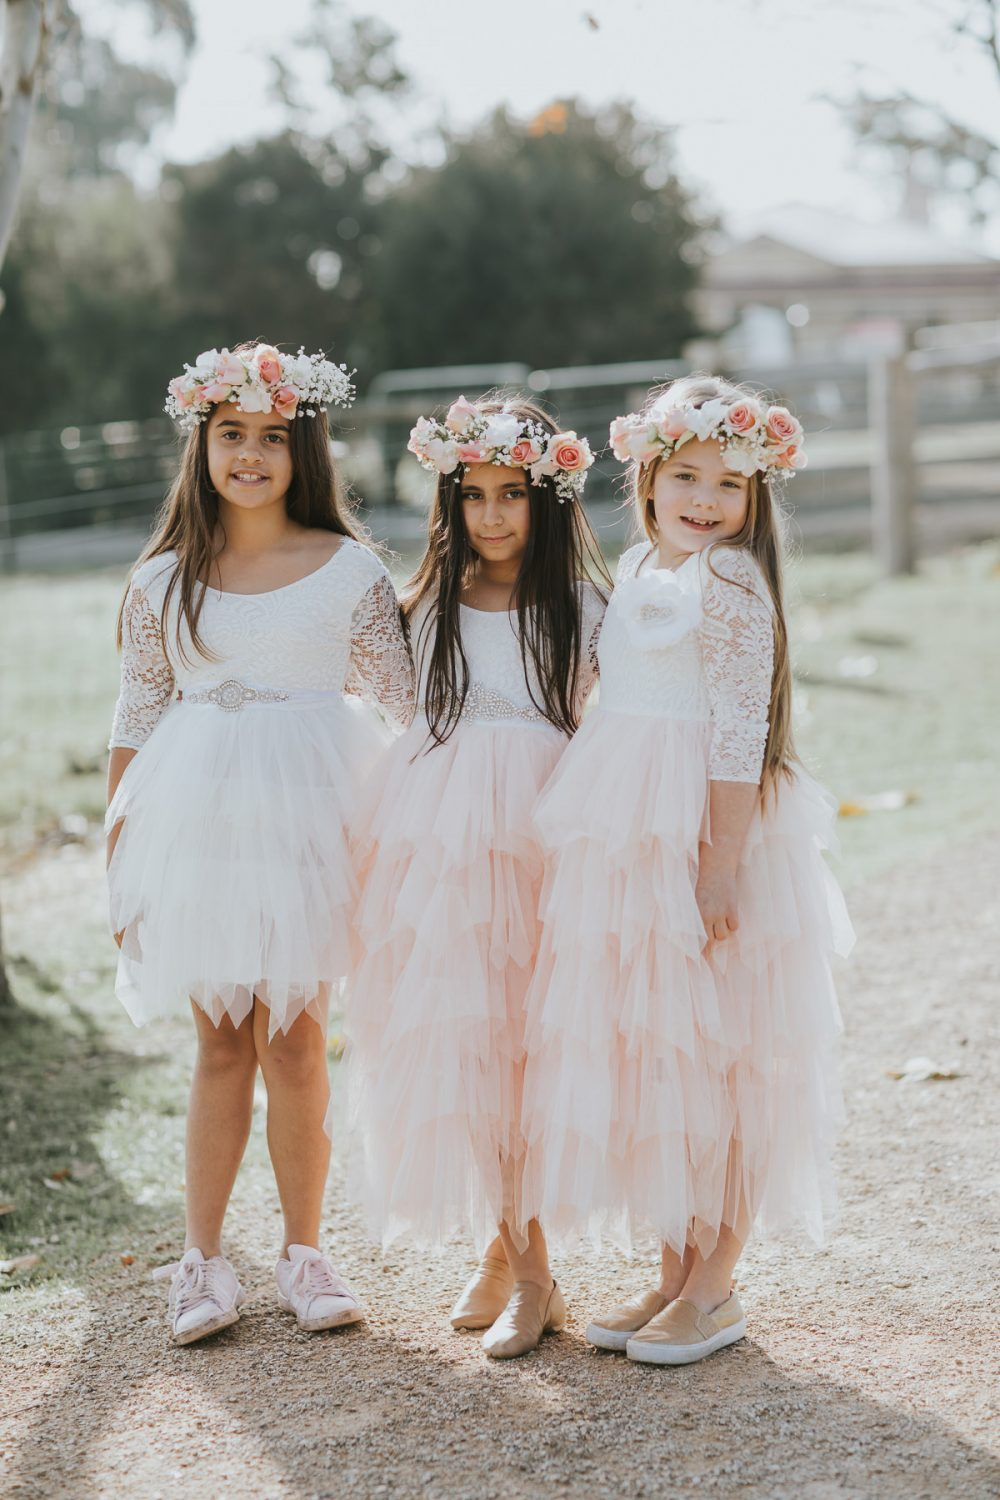 three girls in white dresses and flower crowns